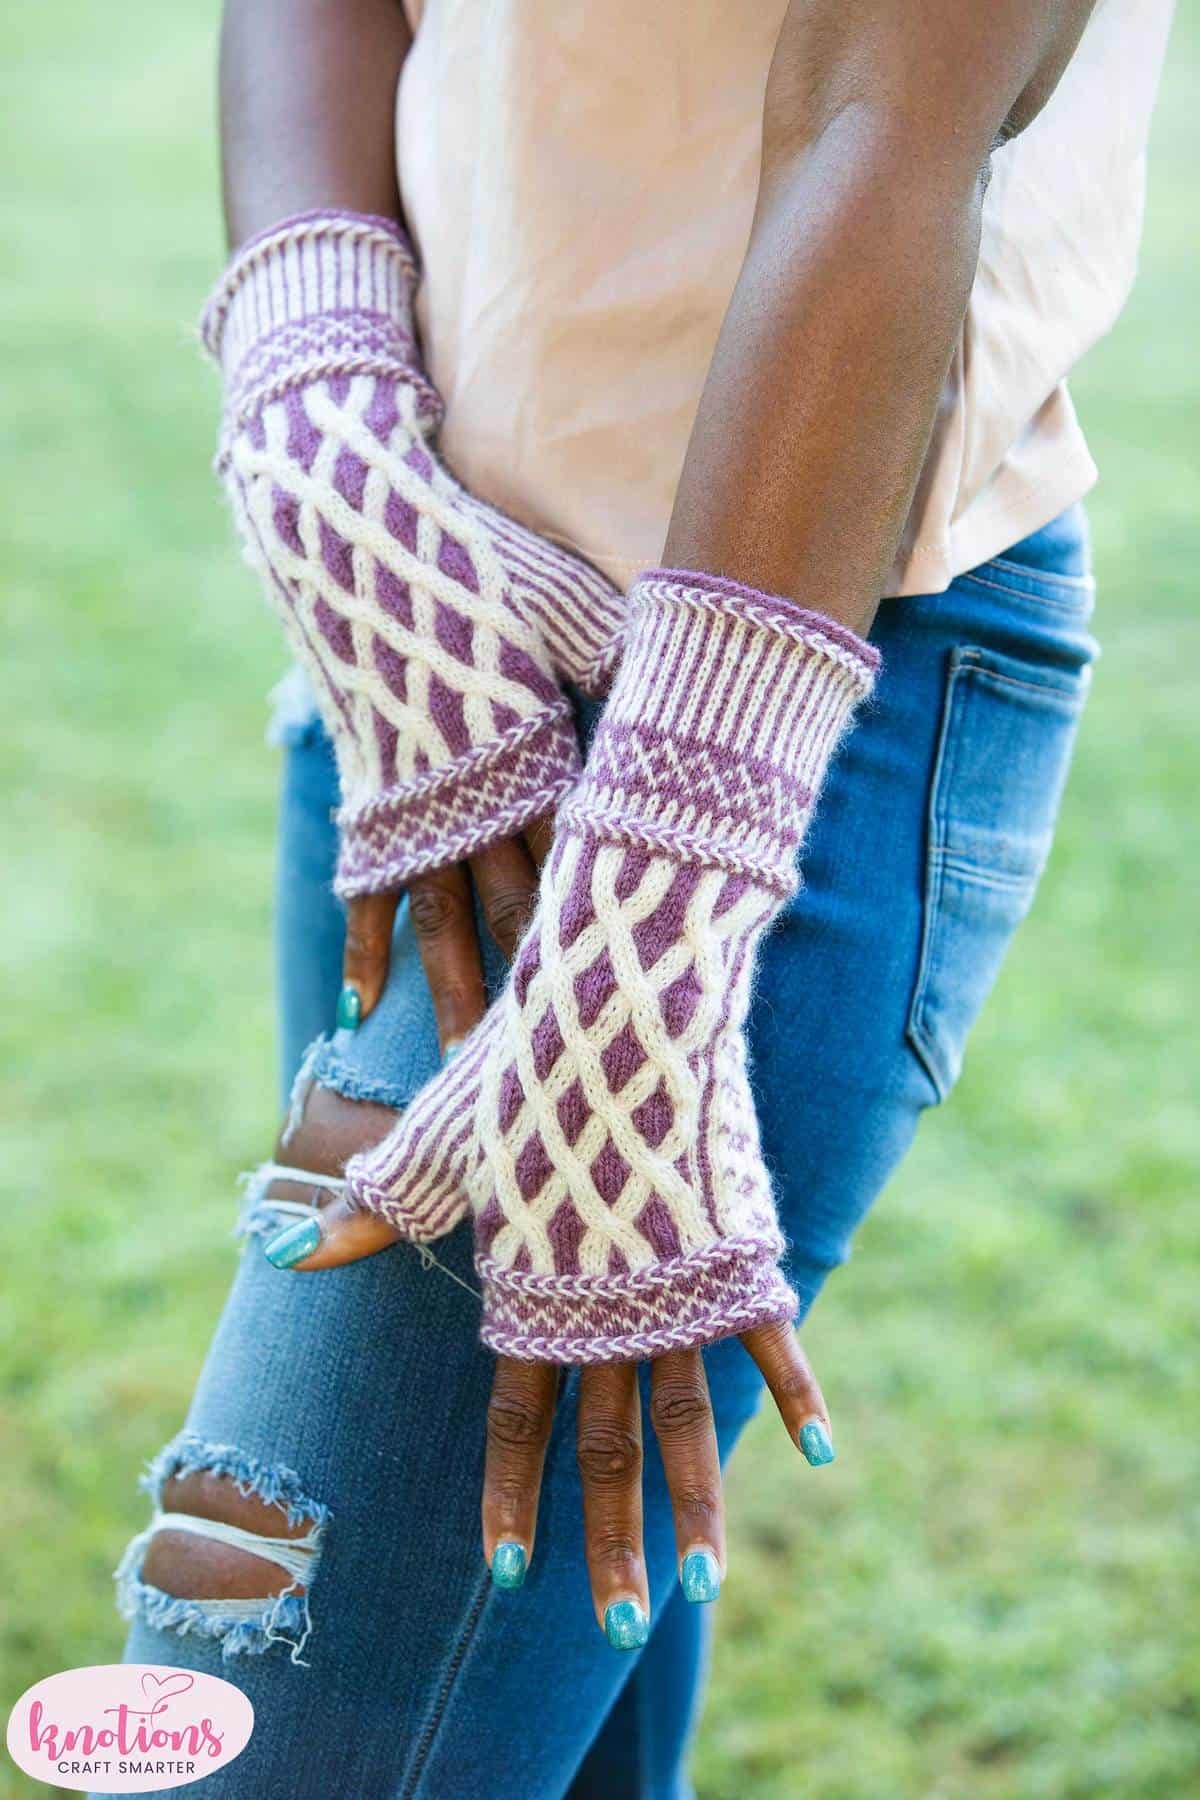 window-into-camelot-mitts-3